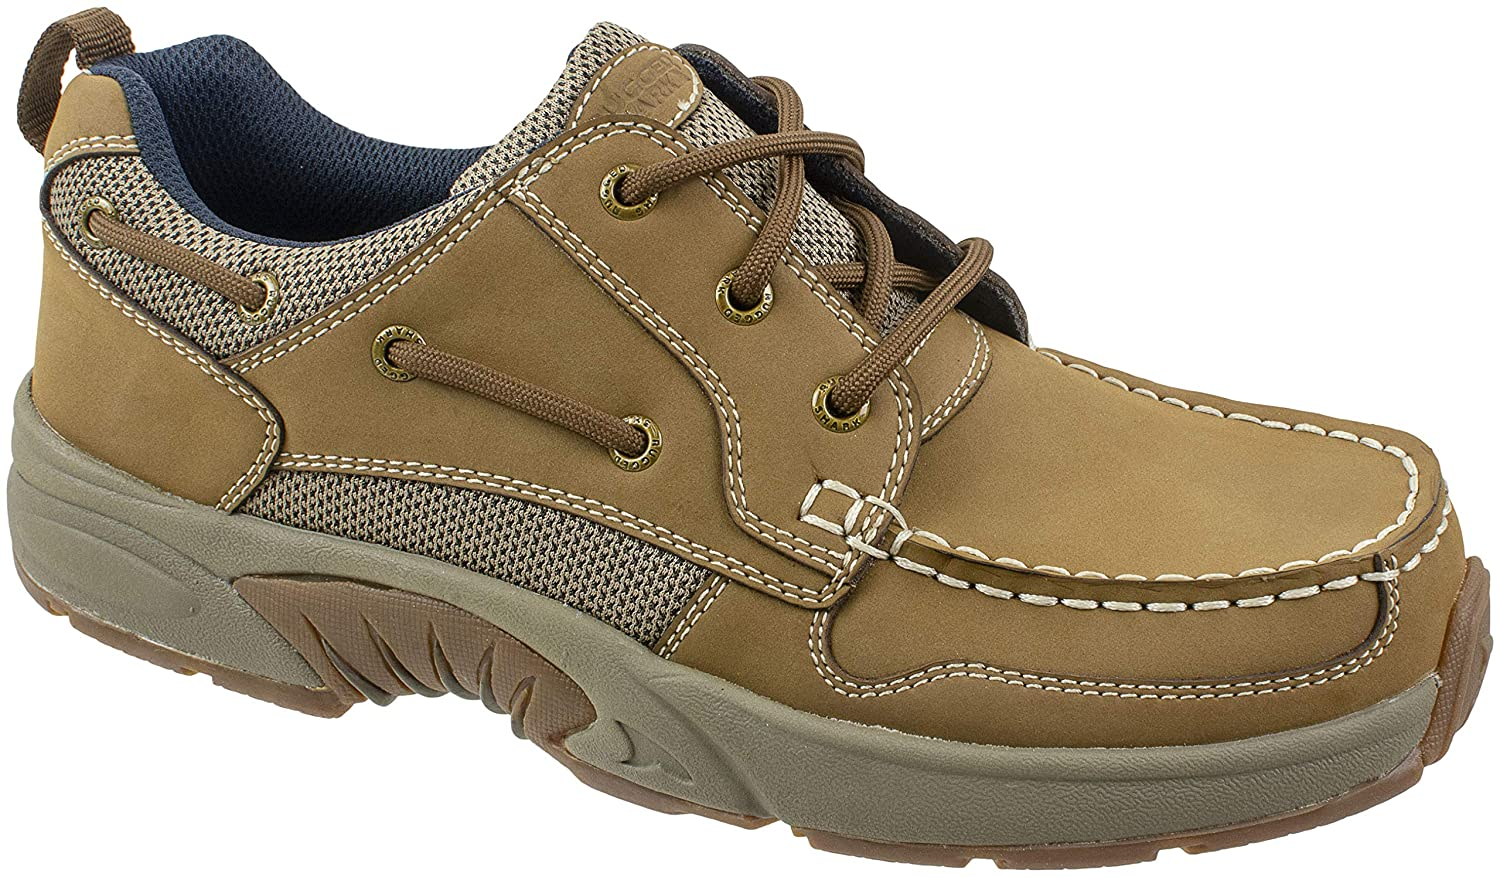 Rugged Shark Men's Boat Shoe,Premium Leather and Comfort, Axis, Size 8 to 13, Regular and Wide